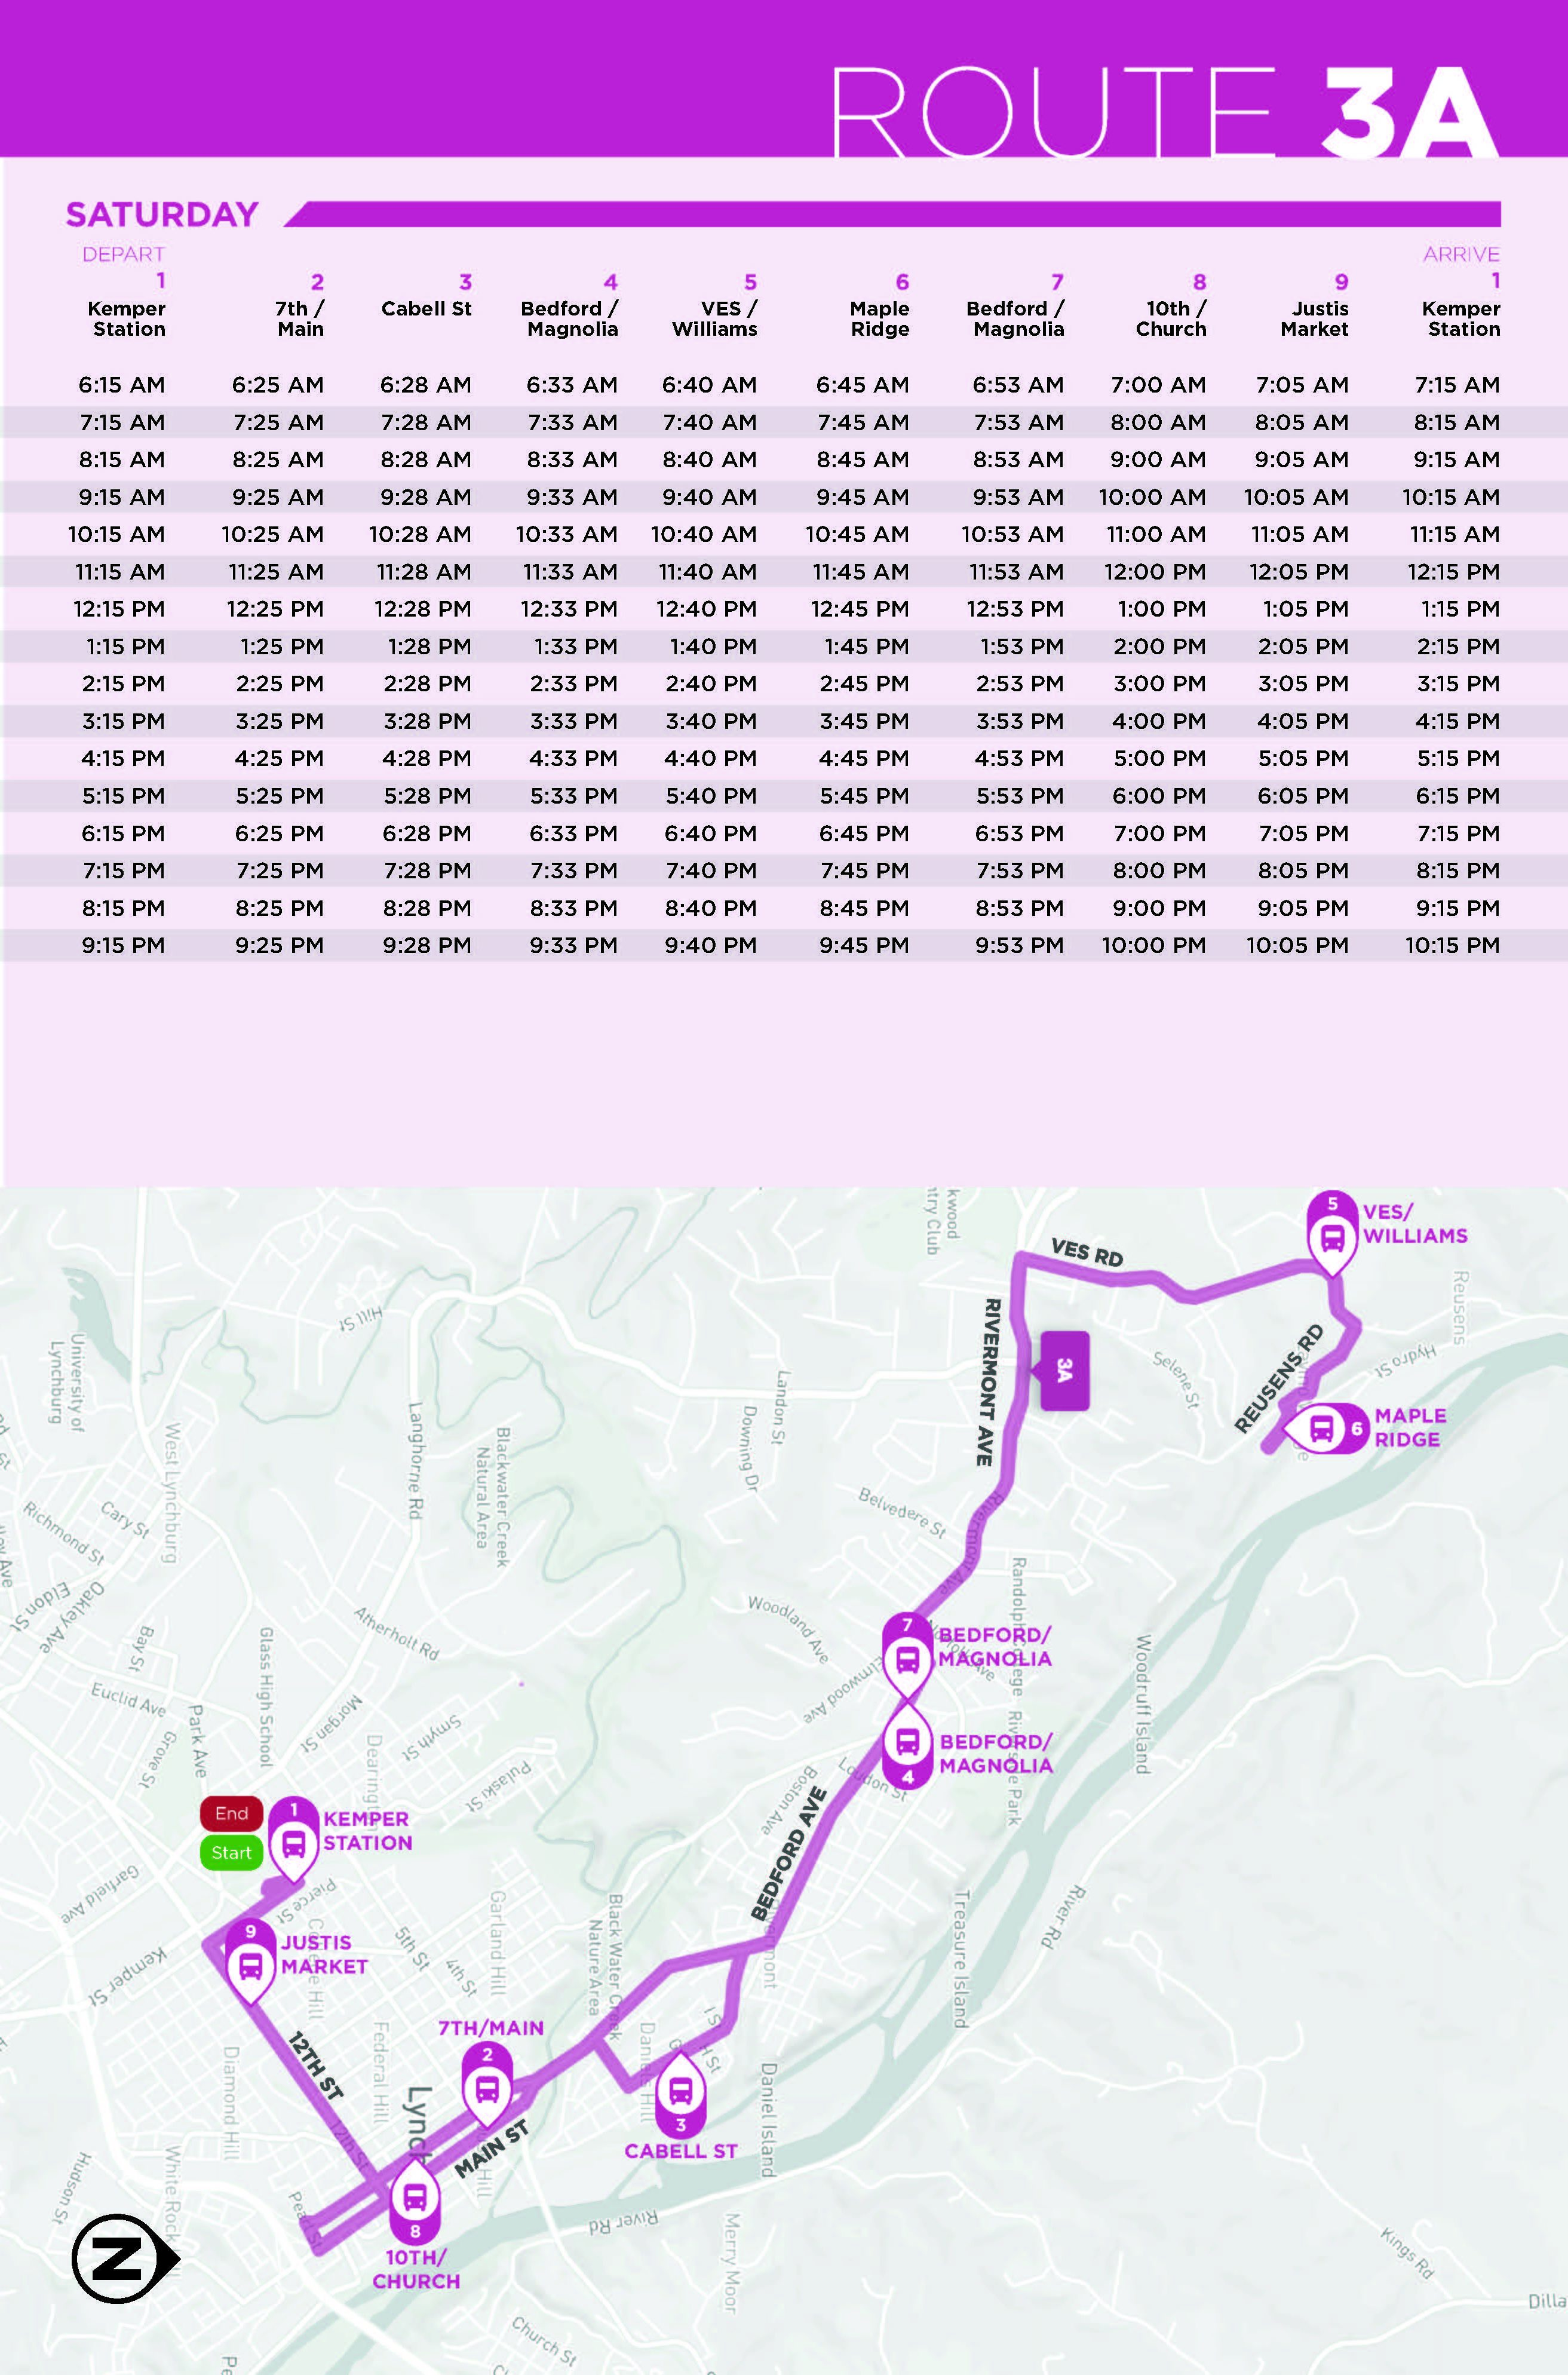 Route 3A Saturday Map and Schedule